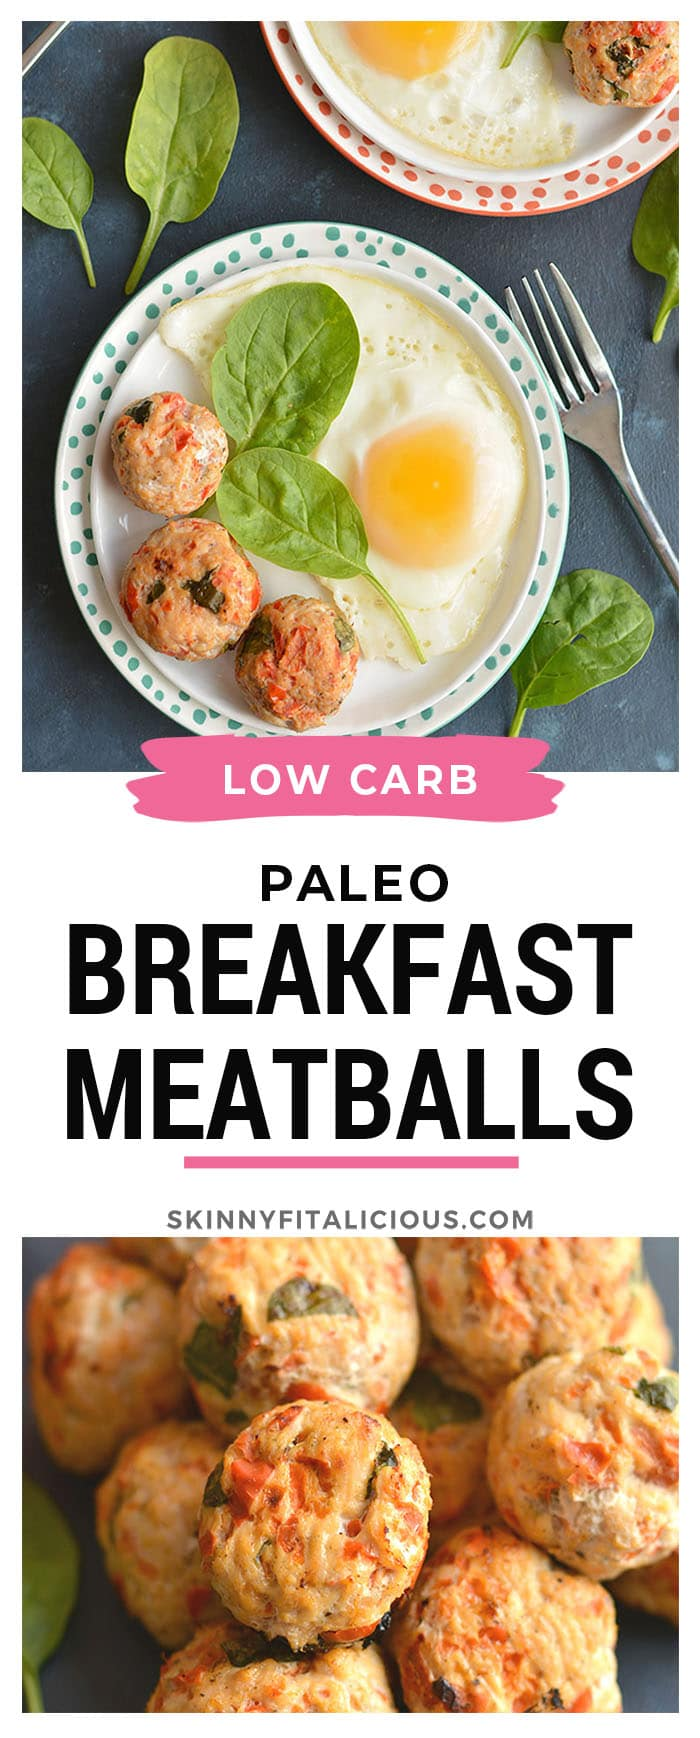 Paleo Breakfast Meatballs! Meatballs for breakfast! These protein & veggie packed balls are great for prepping in advance. Serve with eggs & take with you on the go. Easily customizable, simple to make & delicious! Gluten Free + Low Calorie + Paleo + Low Carb